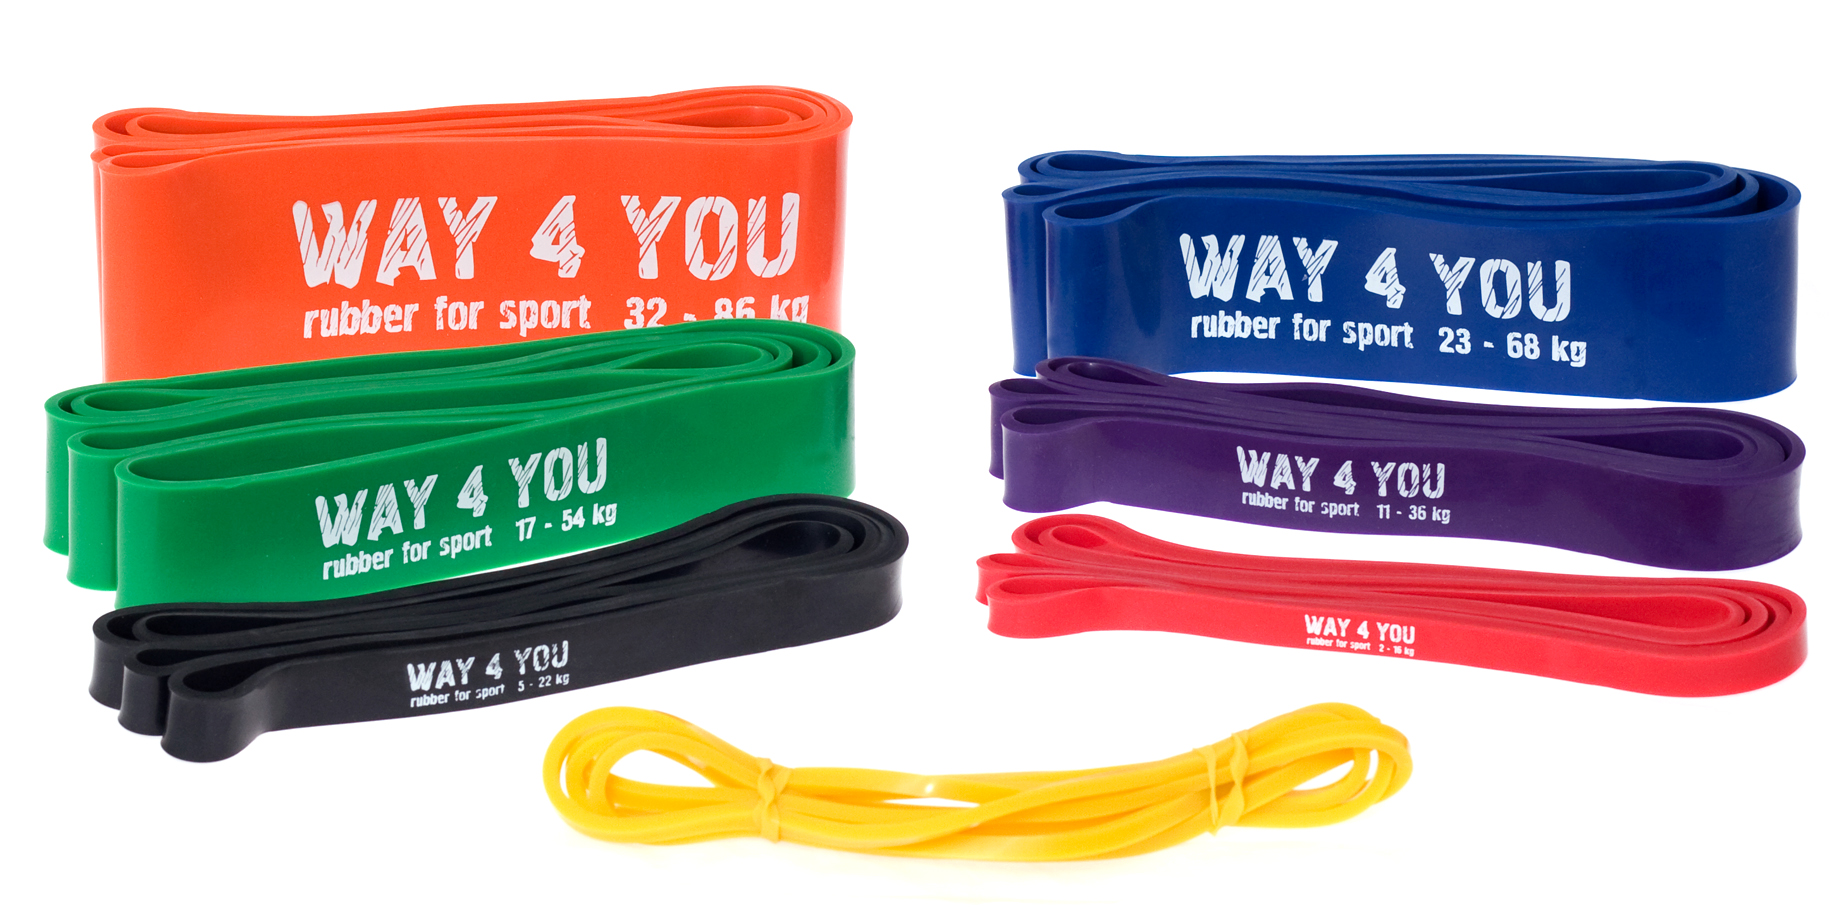 http://way4you.com.ua/images/upload/Way4you_rubber_band2.jpg